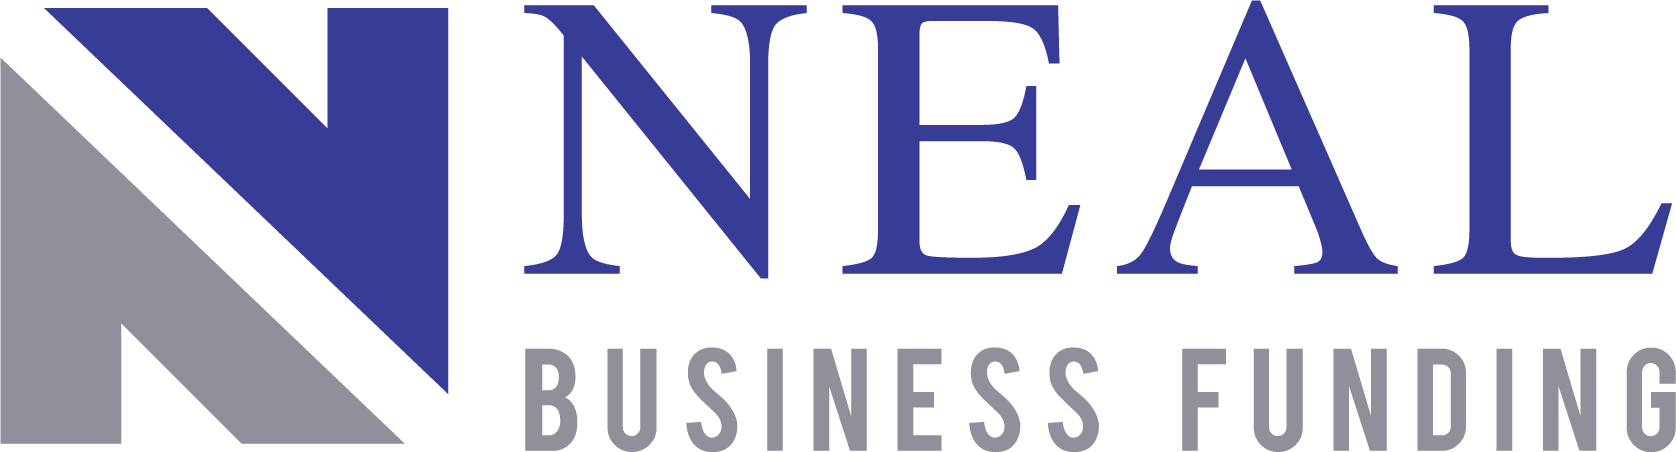 Neal Business Funding